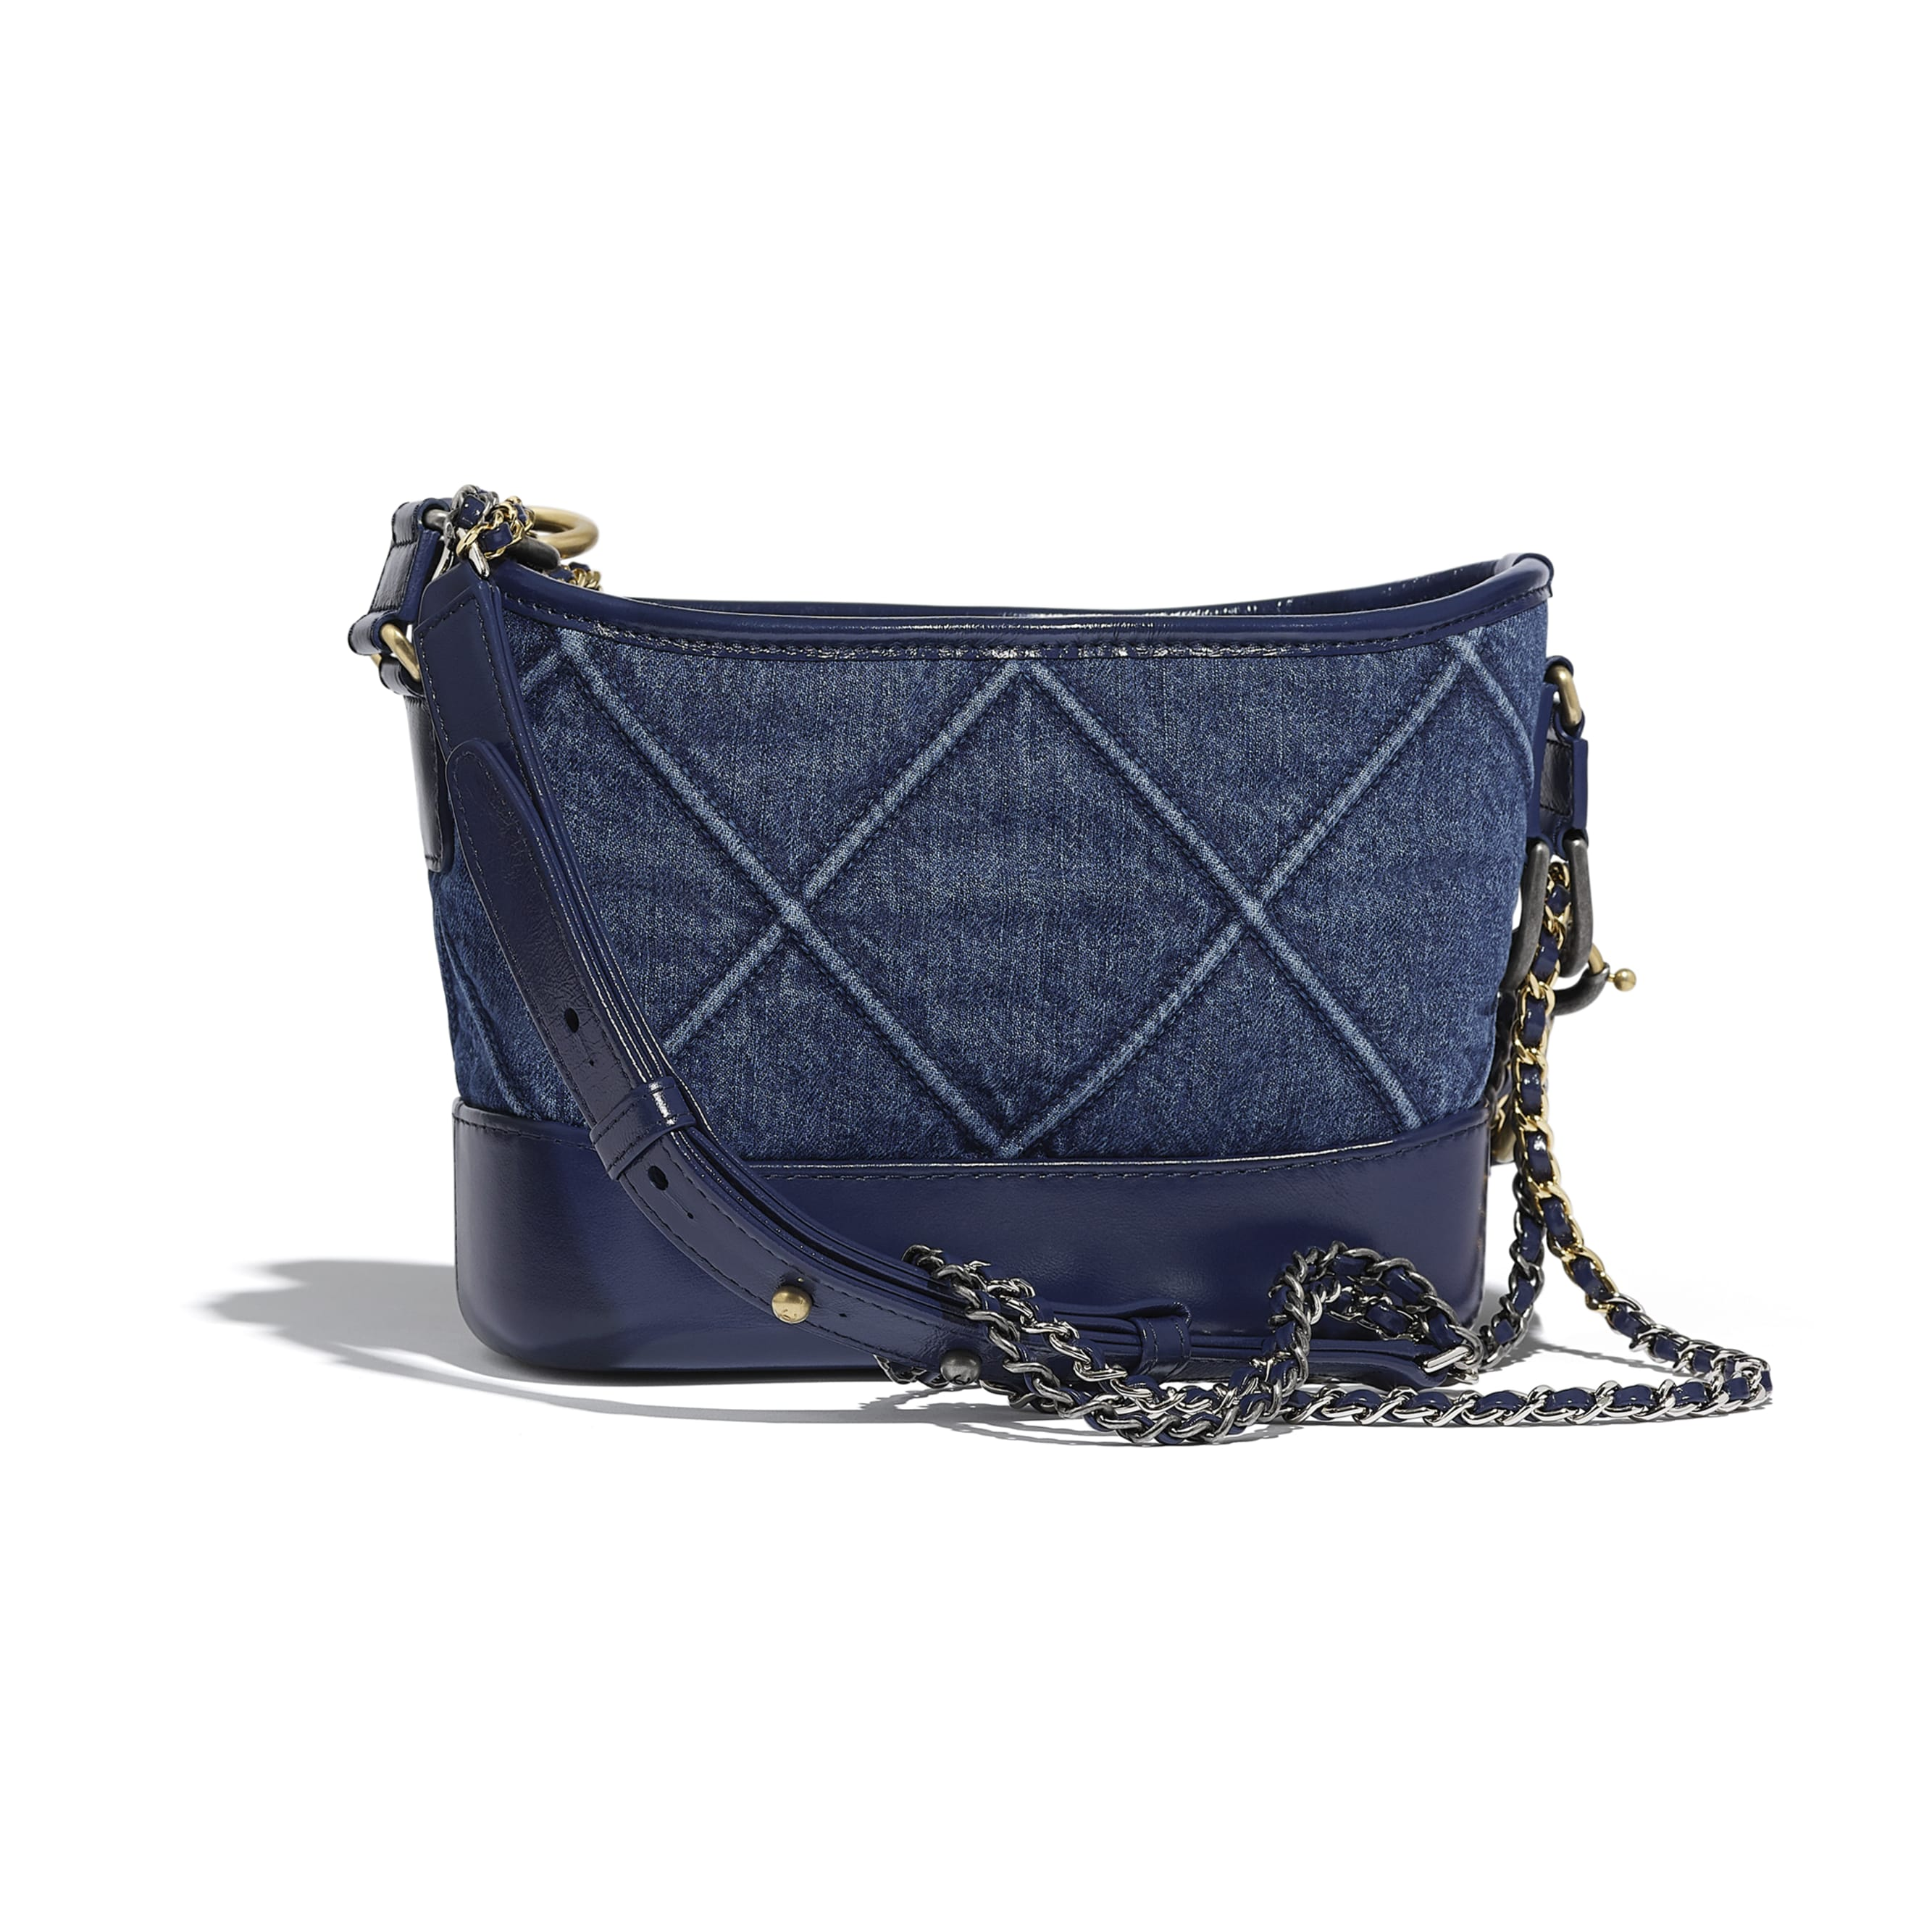 CHANEL'S GABRIELLE Small Hobo Bag - Blue - Denim, Calfskin, Gold-Tone, Silver-Tone & Ruthenium-Finish Metal - Alternative view - see standard sized version